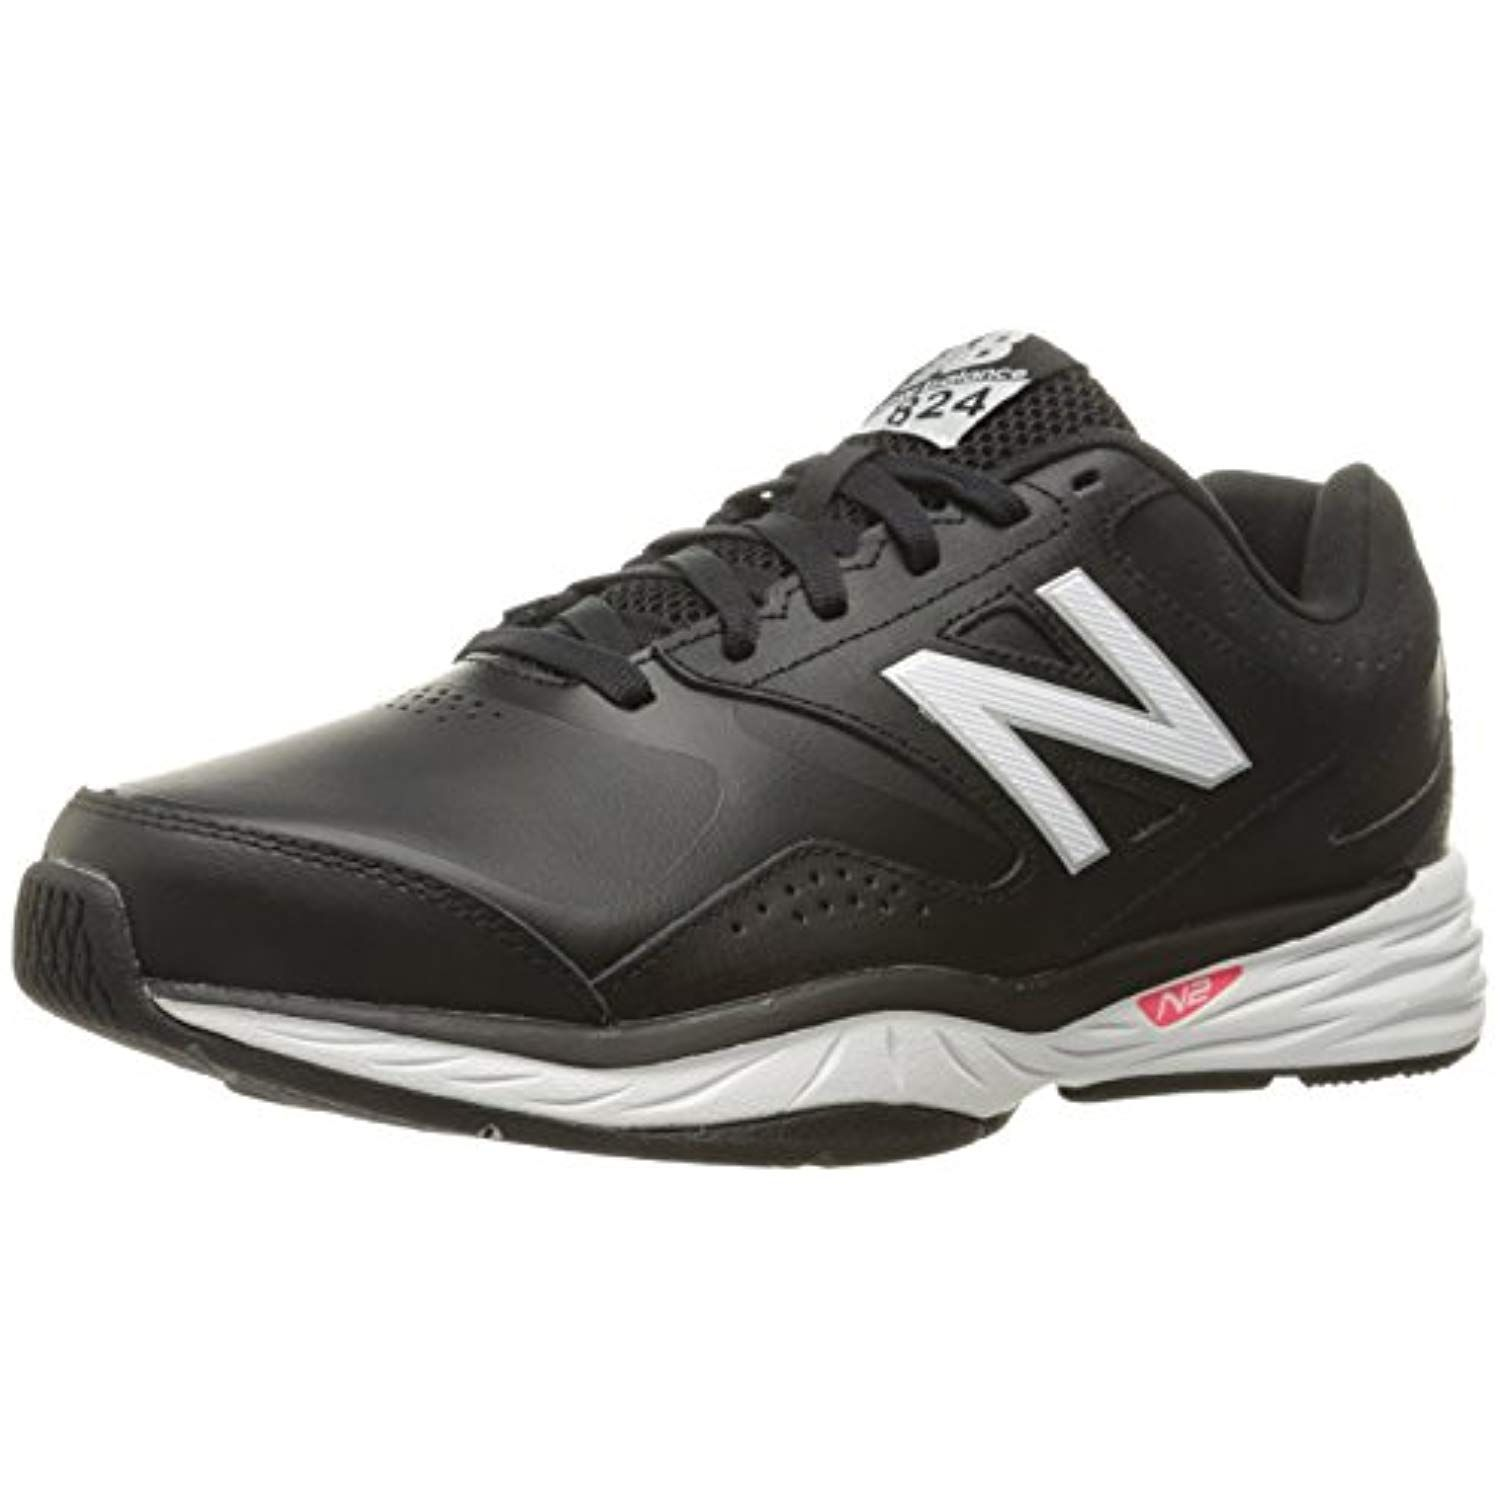 2168281dbe748 Women's WX824 Training Shoe *** Read more at the image link. (This ...